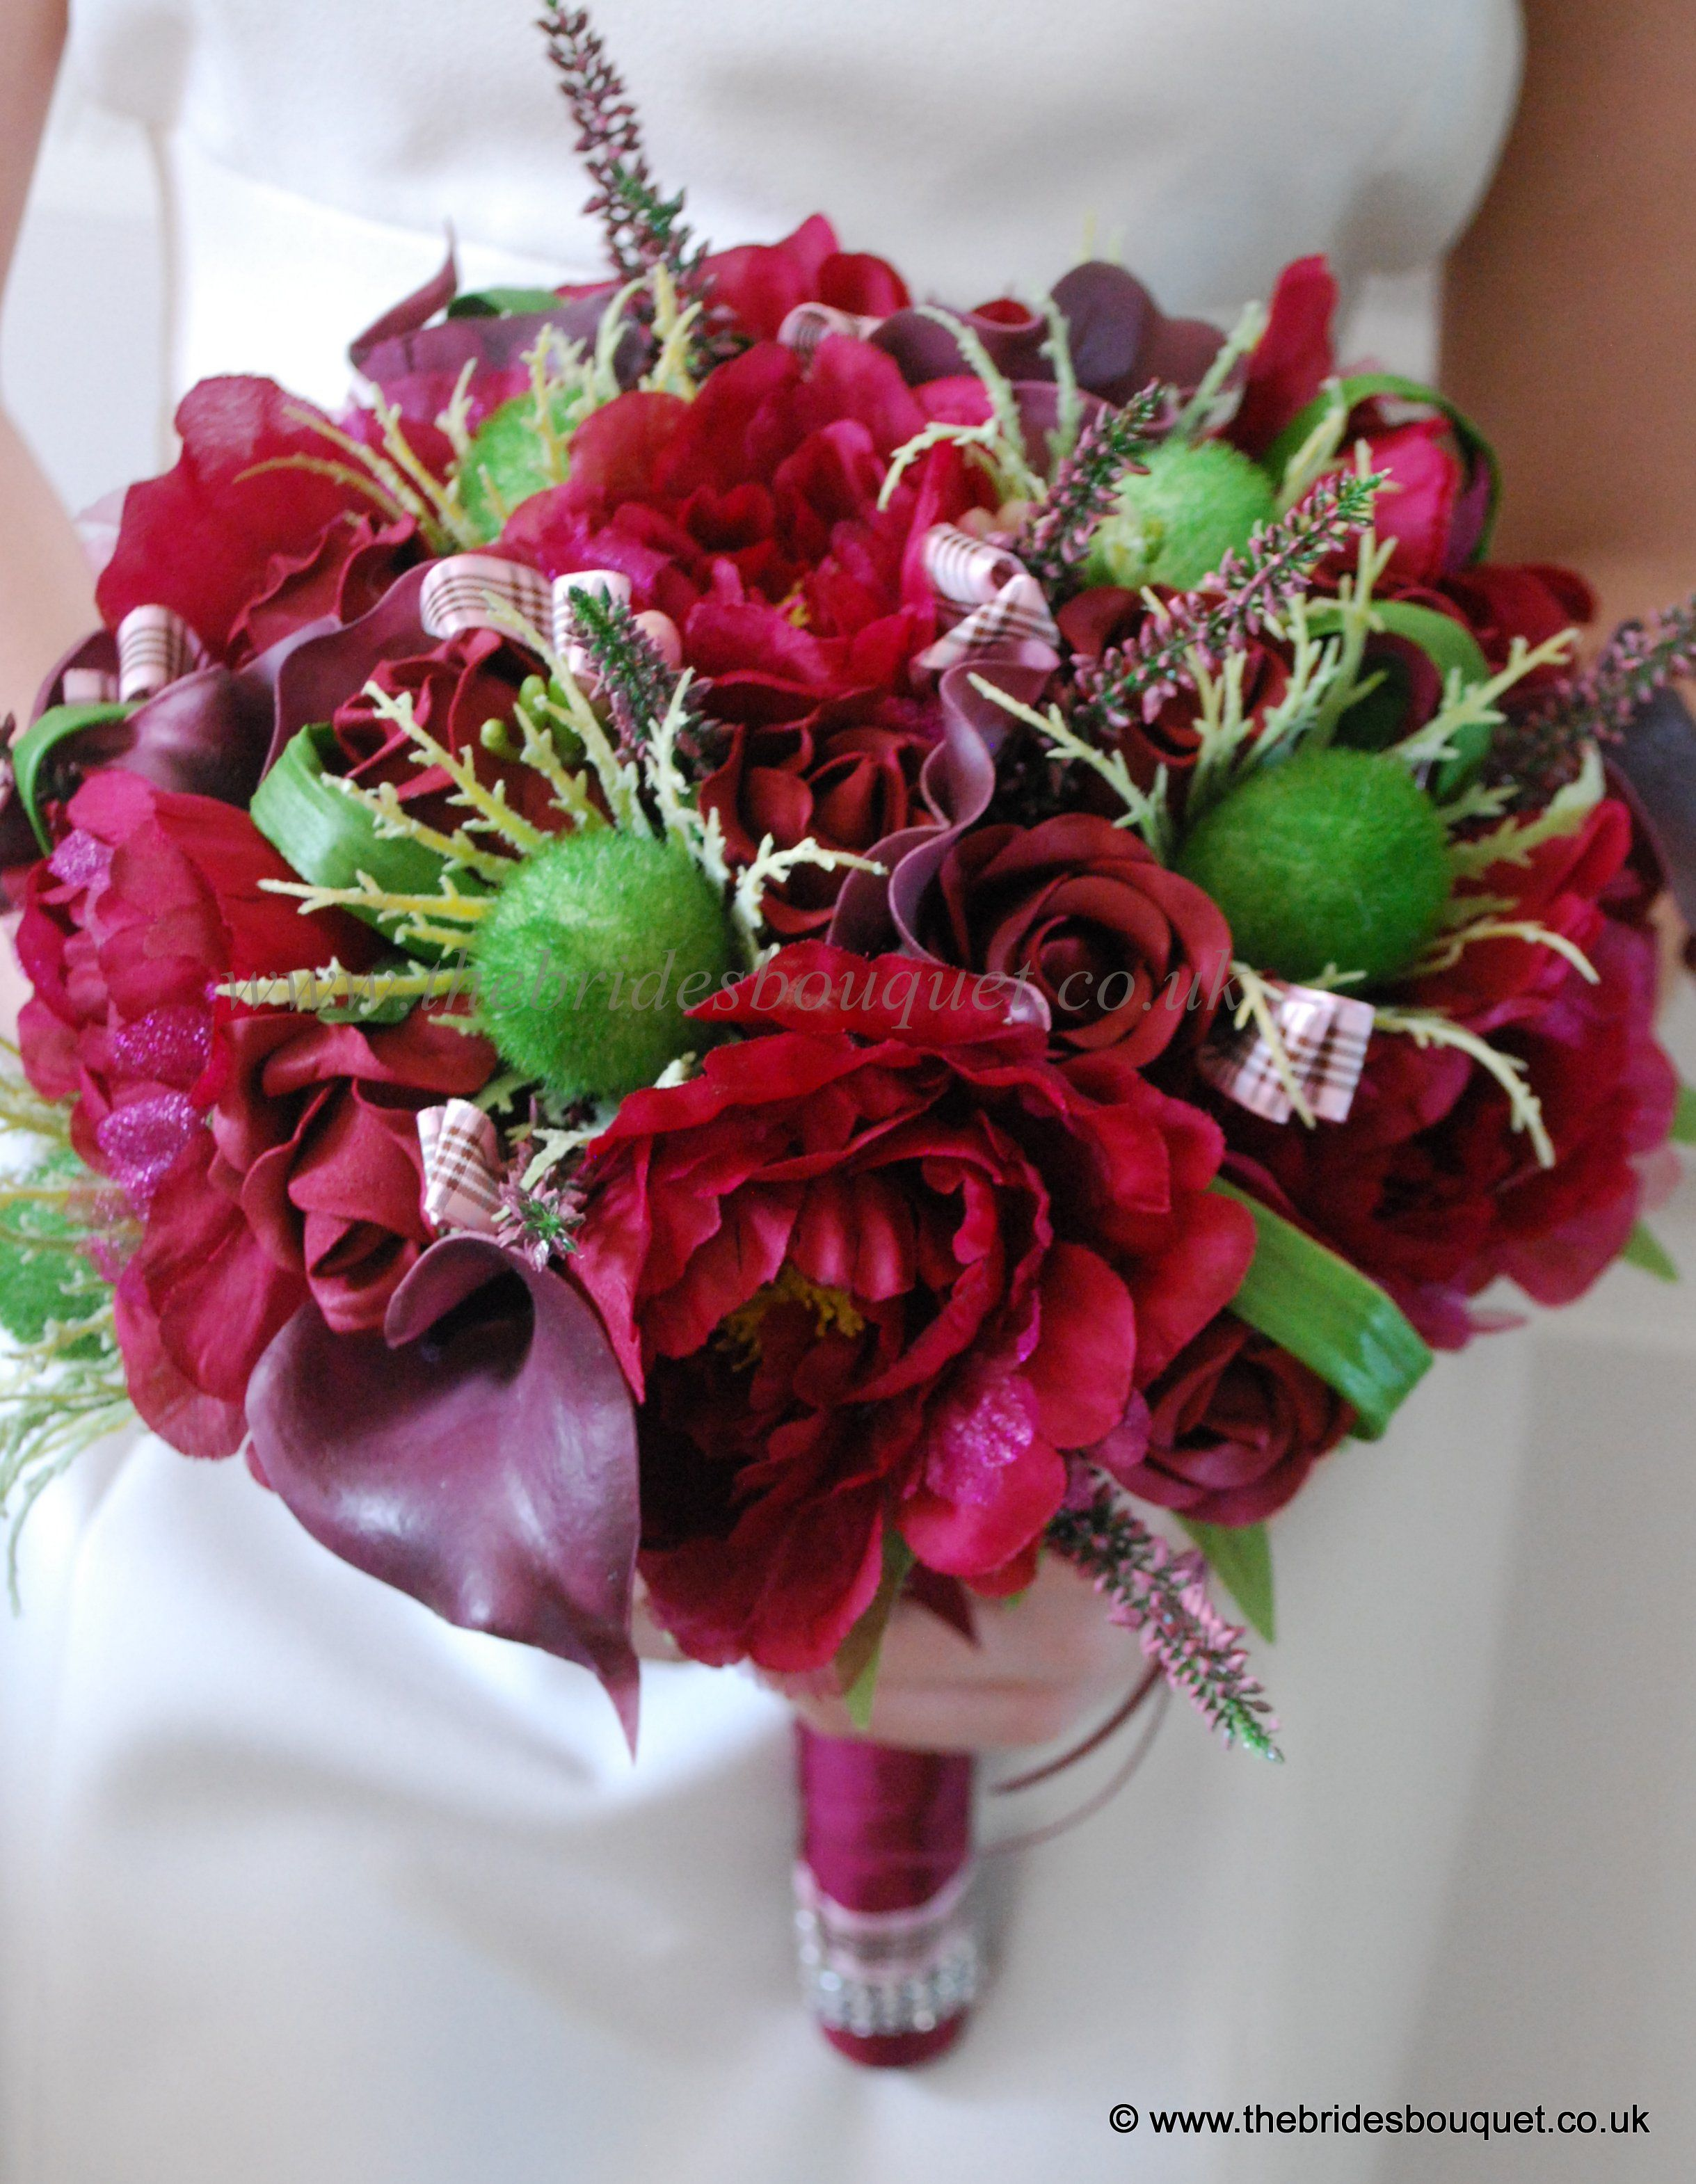 Scottish theme wedding flowers - deep red rose, thistle and heather ...